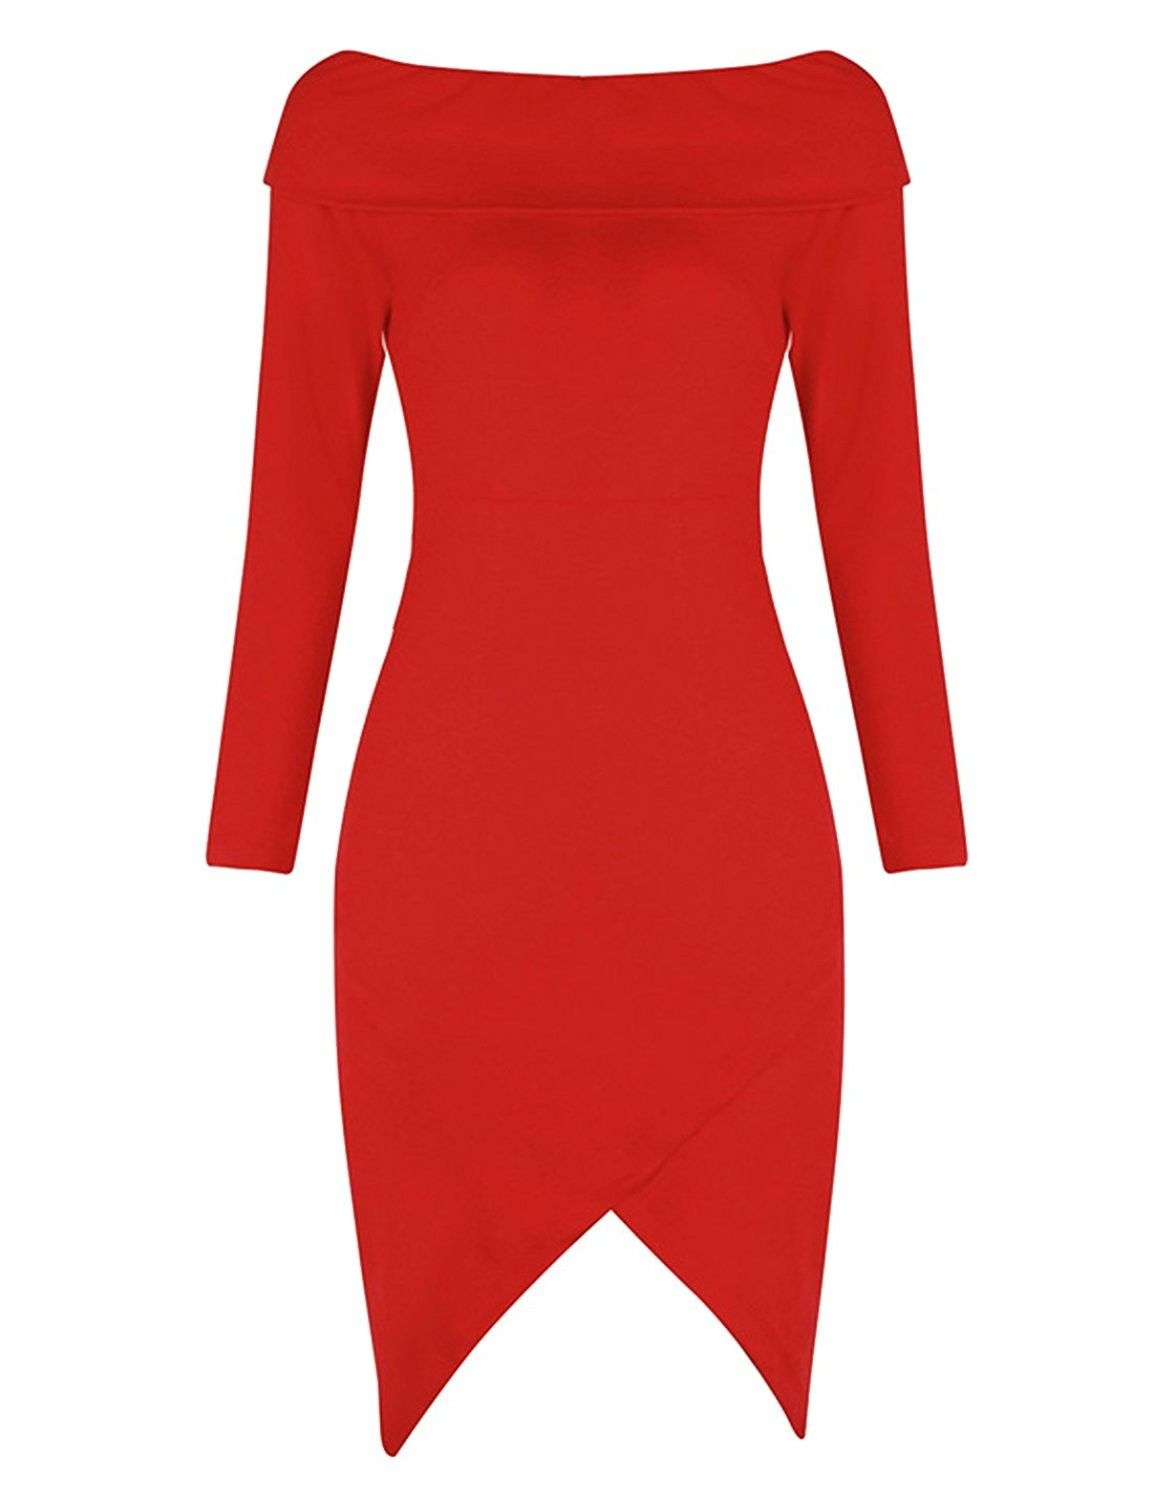 Womenus long sleeve boat neck bandage bodycon cocktail dress red